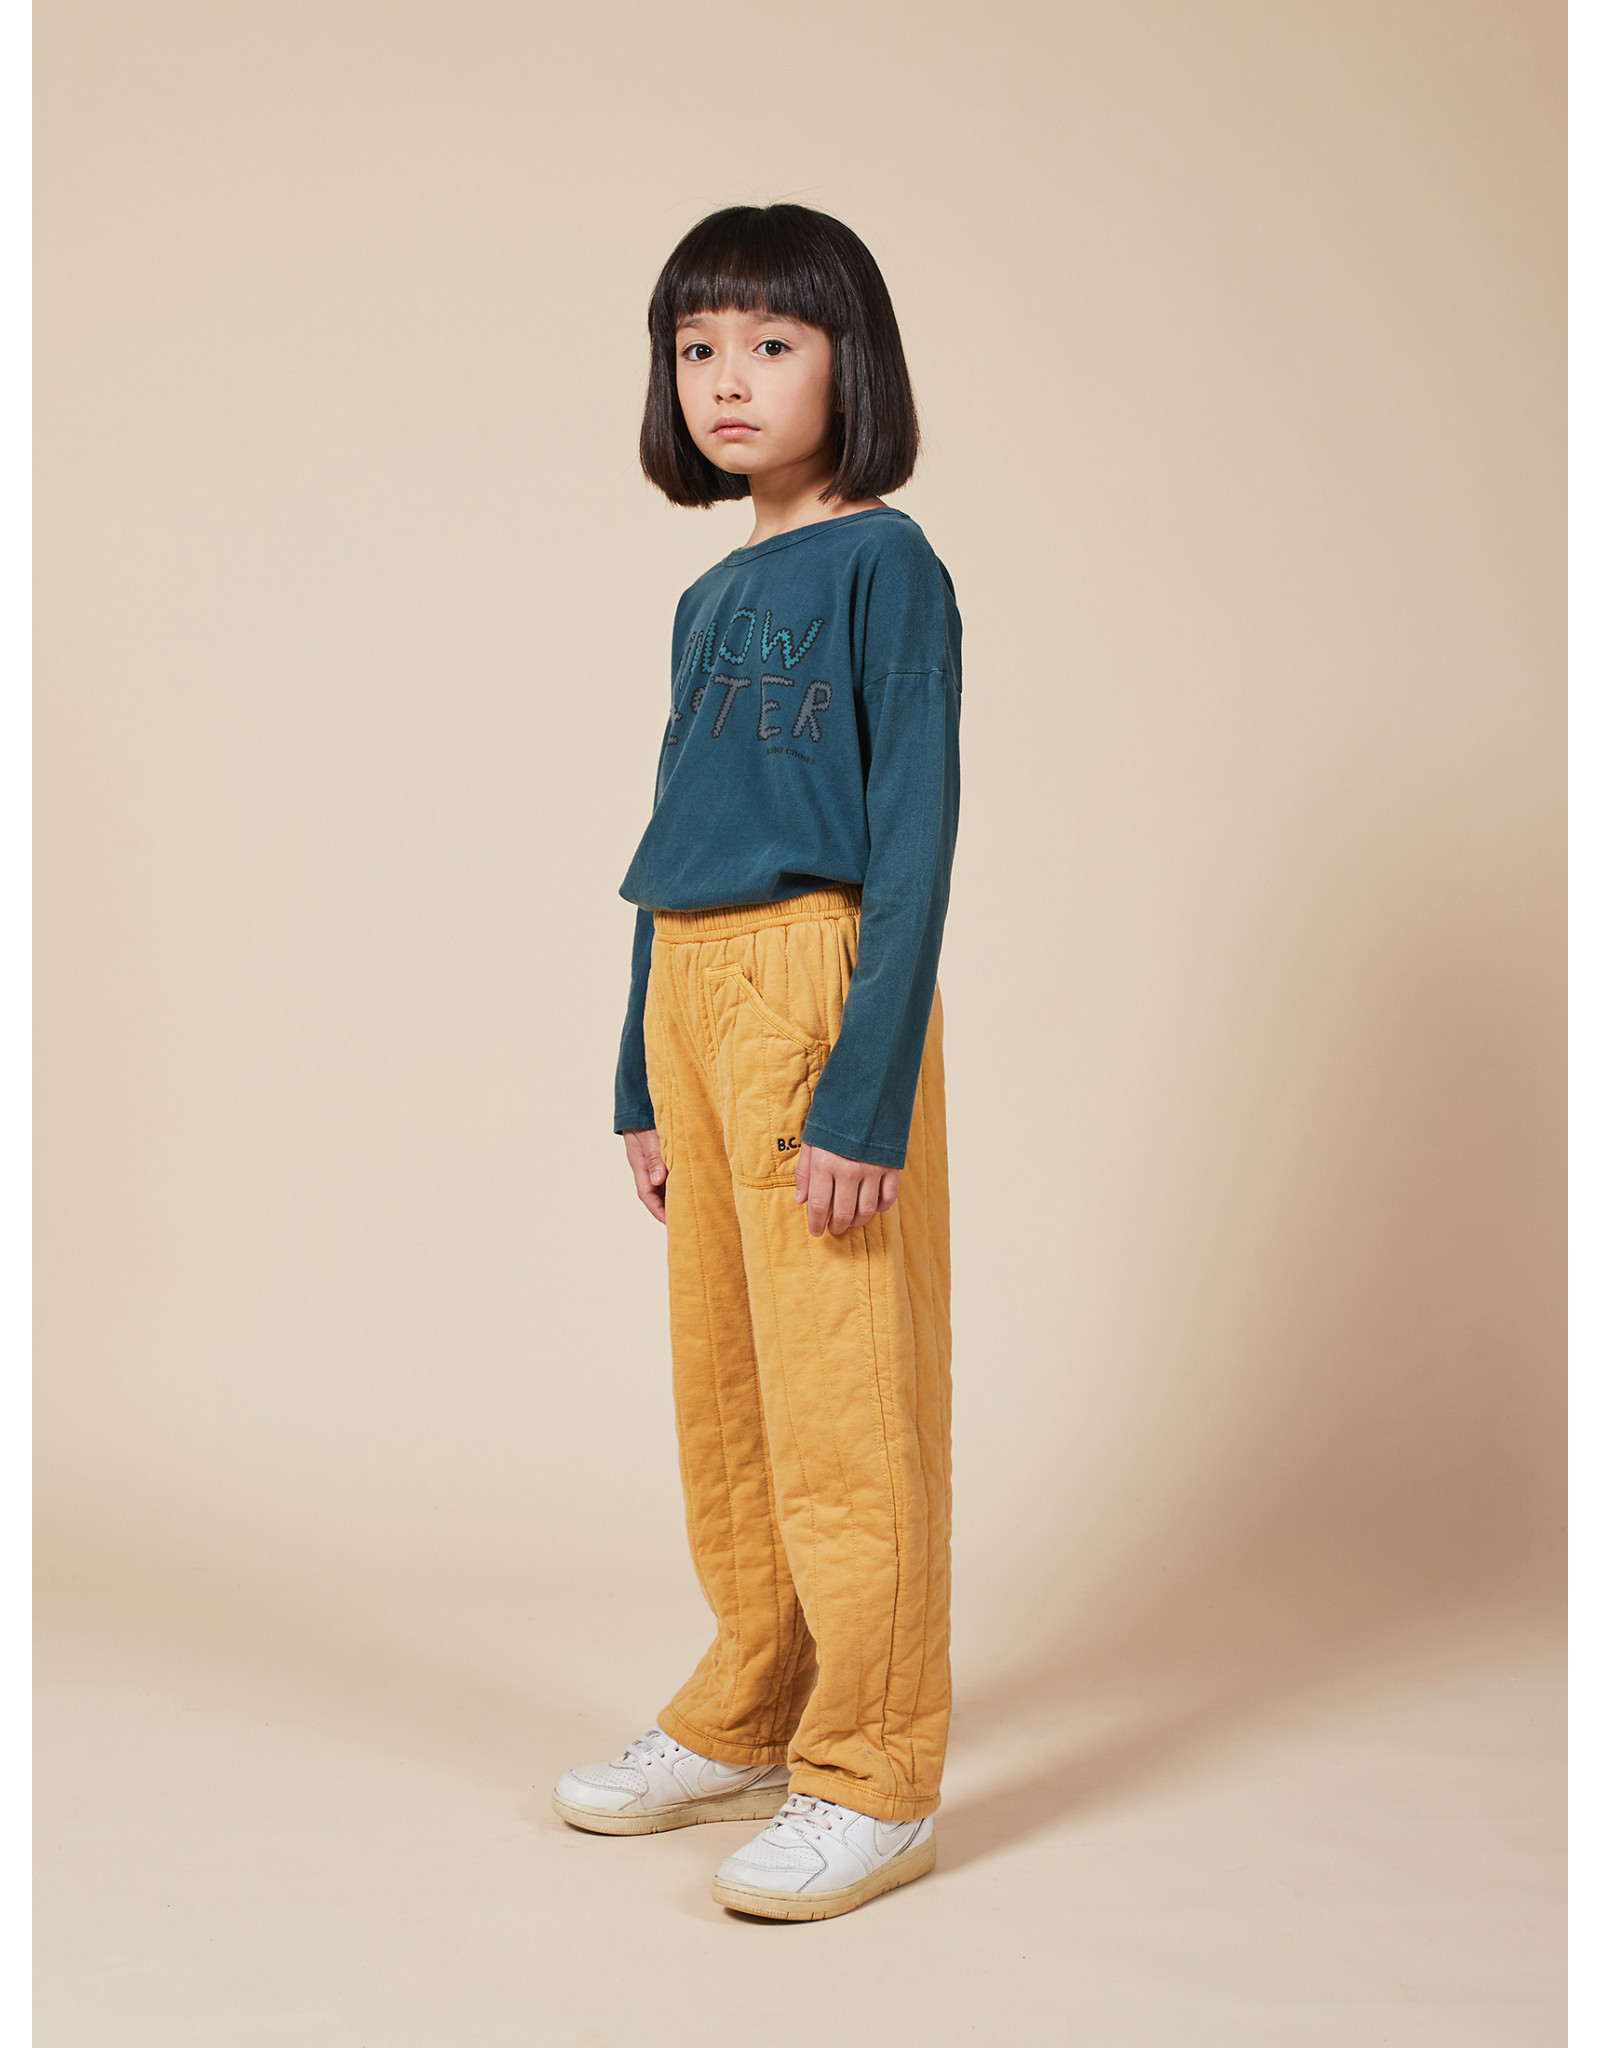 Bobo Choses Pillow tester longsleeve